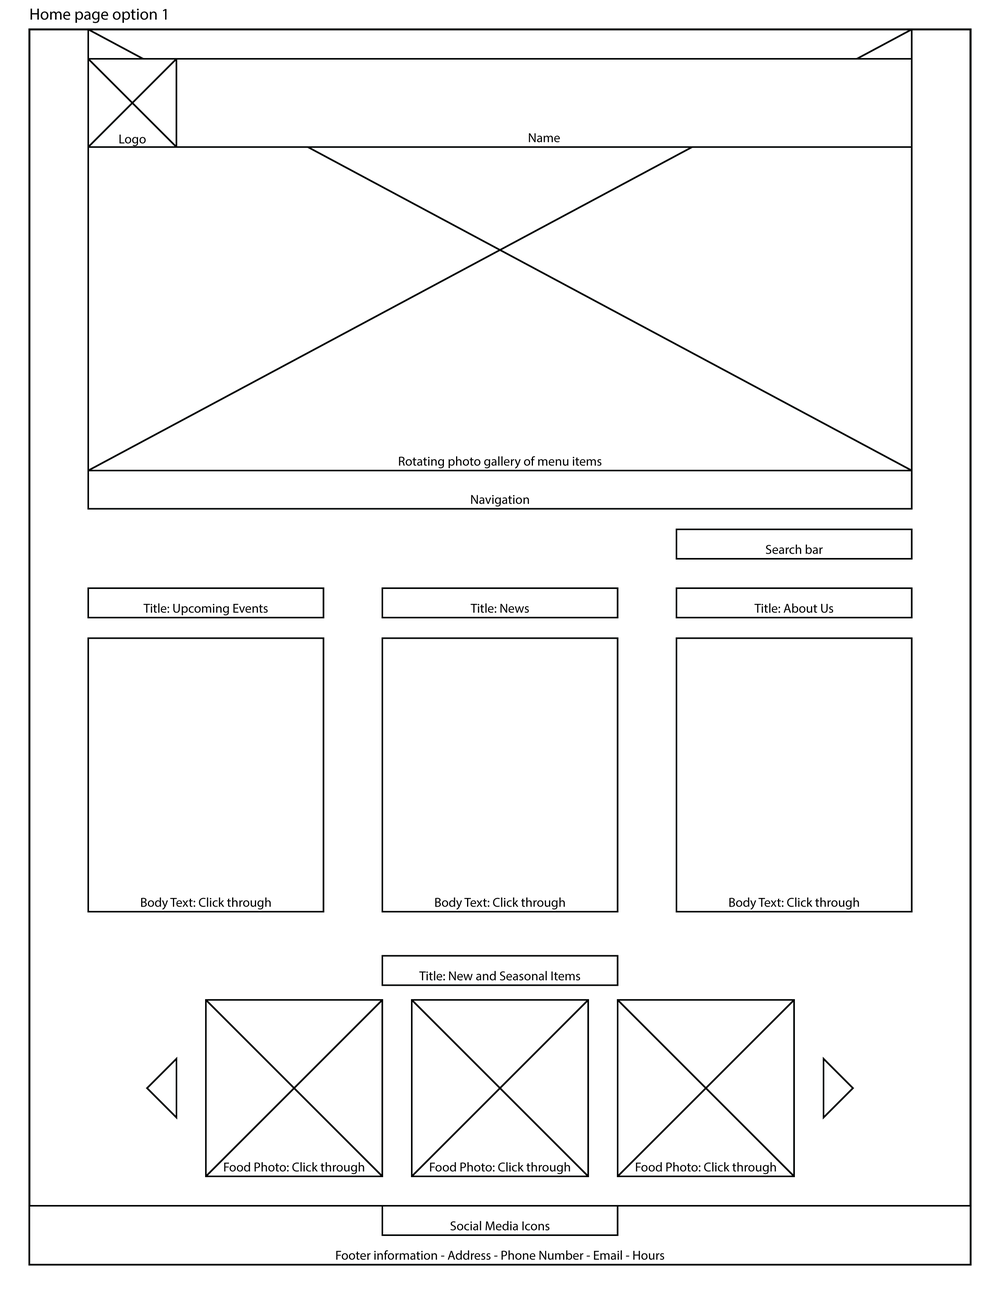 Wright_Max_Wireframes-03.png